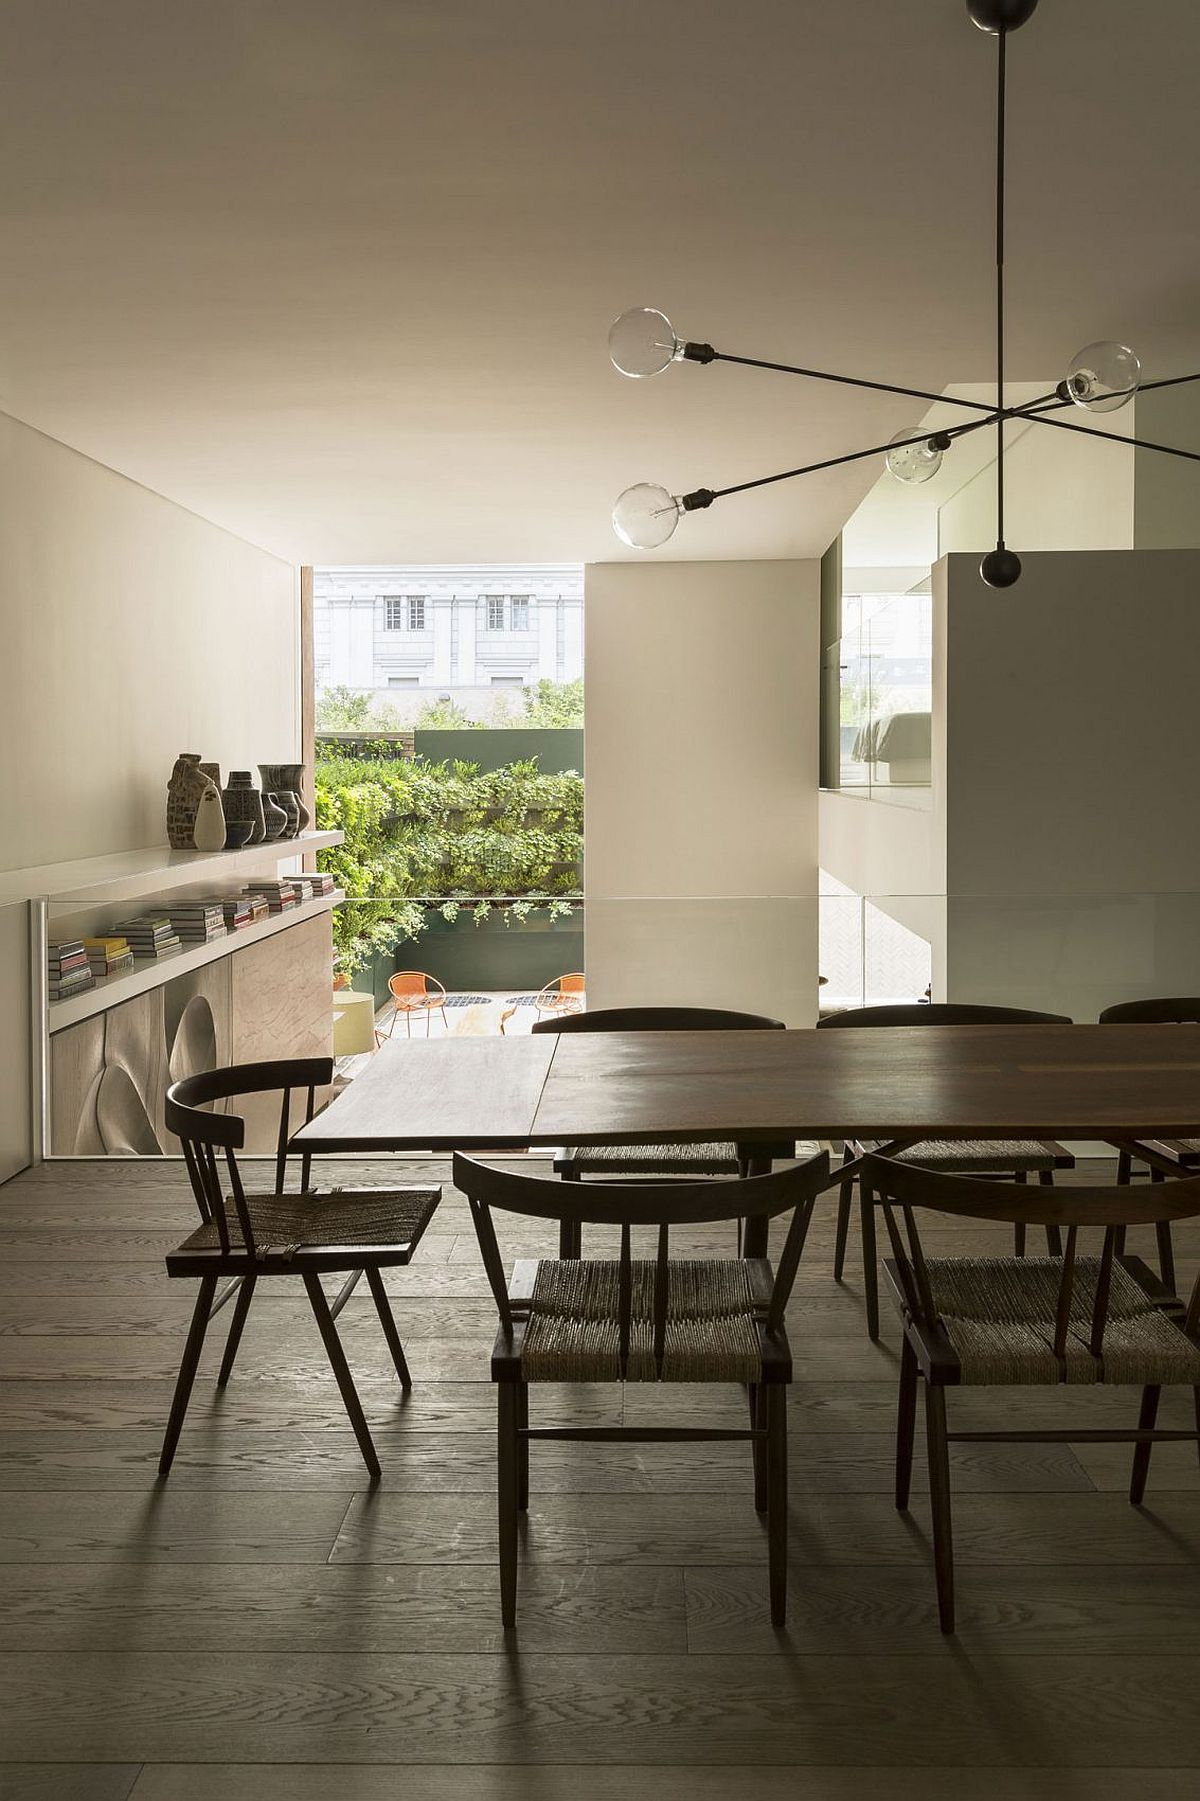 Dining room on mezzanine level overlooking the lower level living area